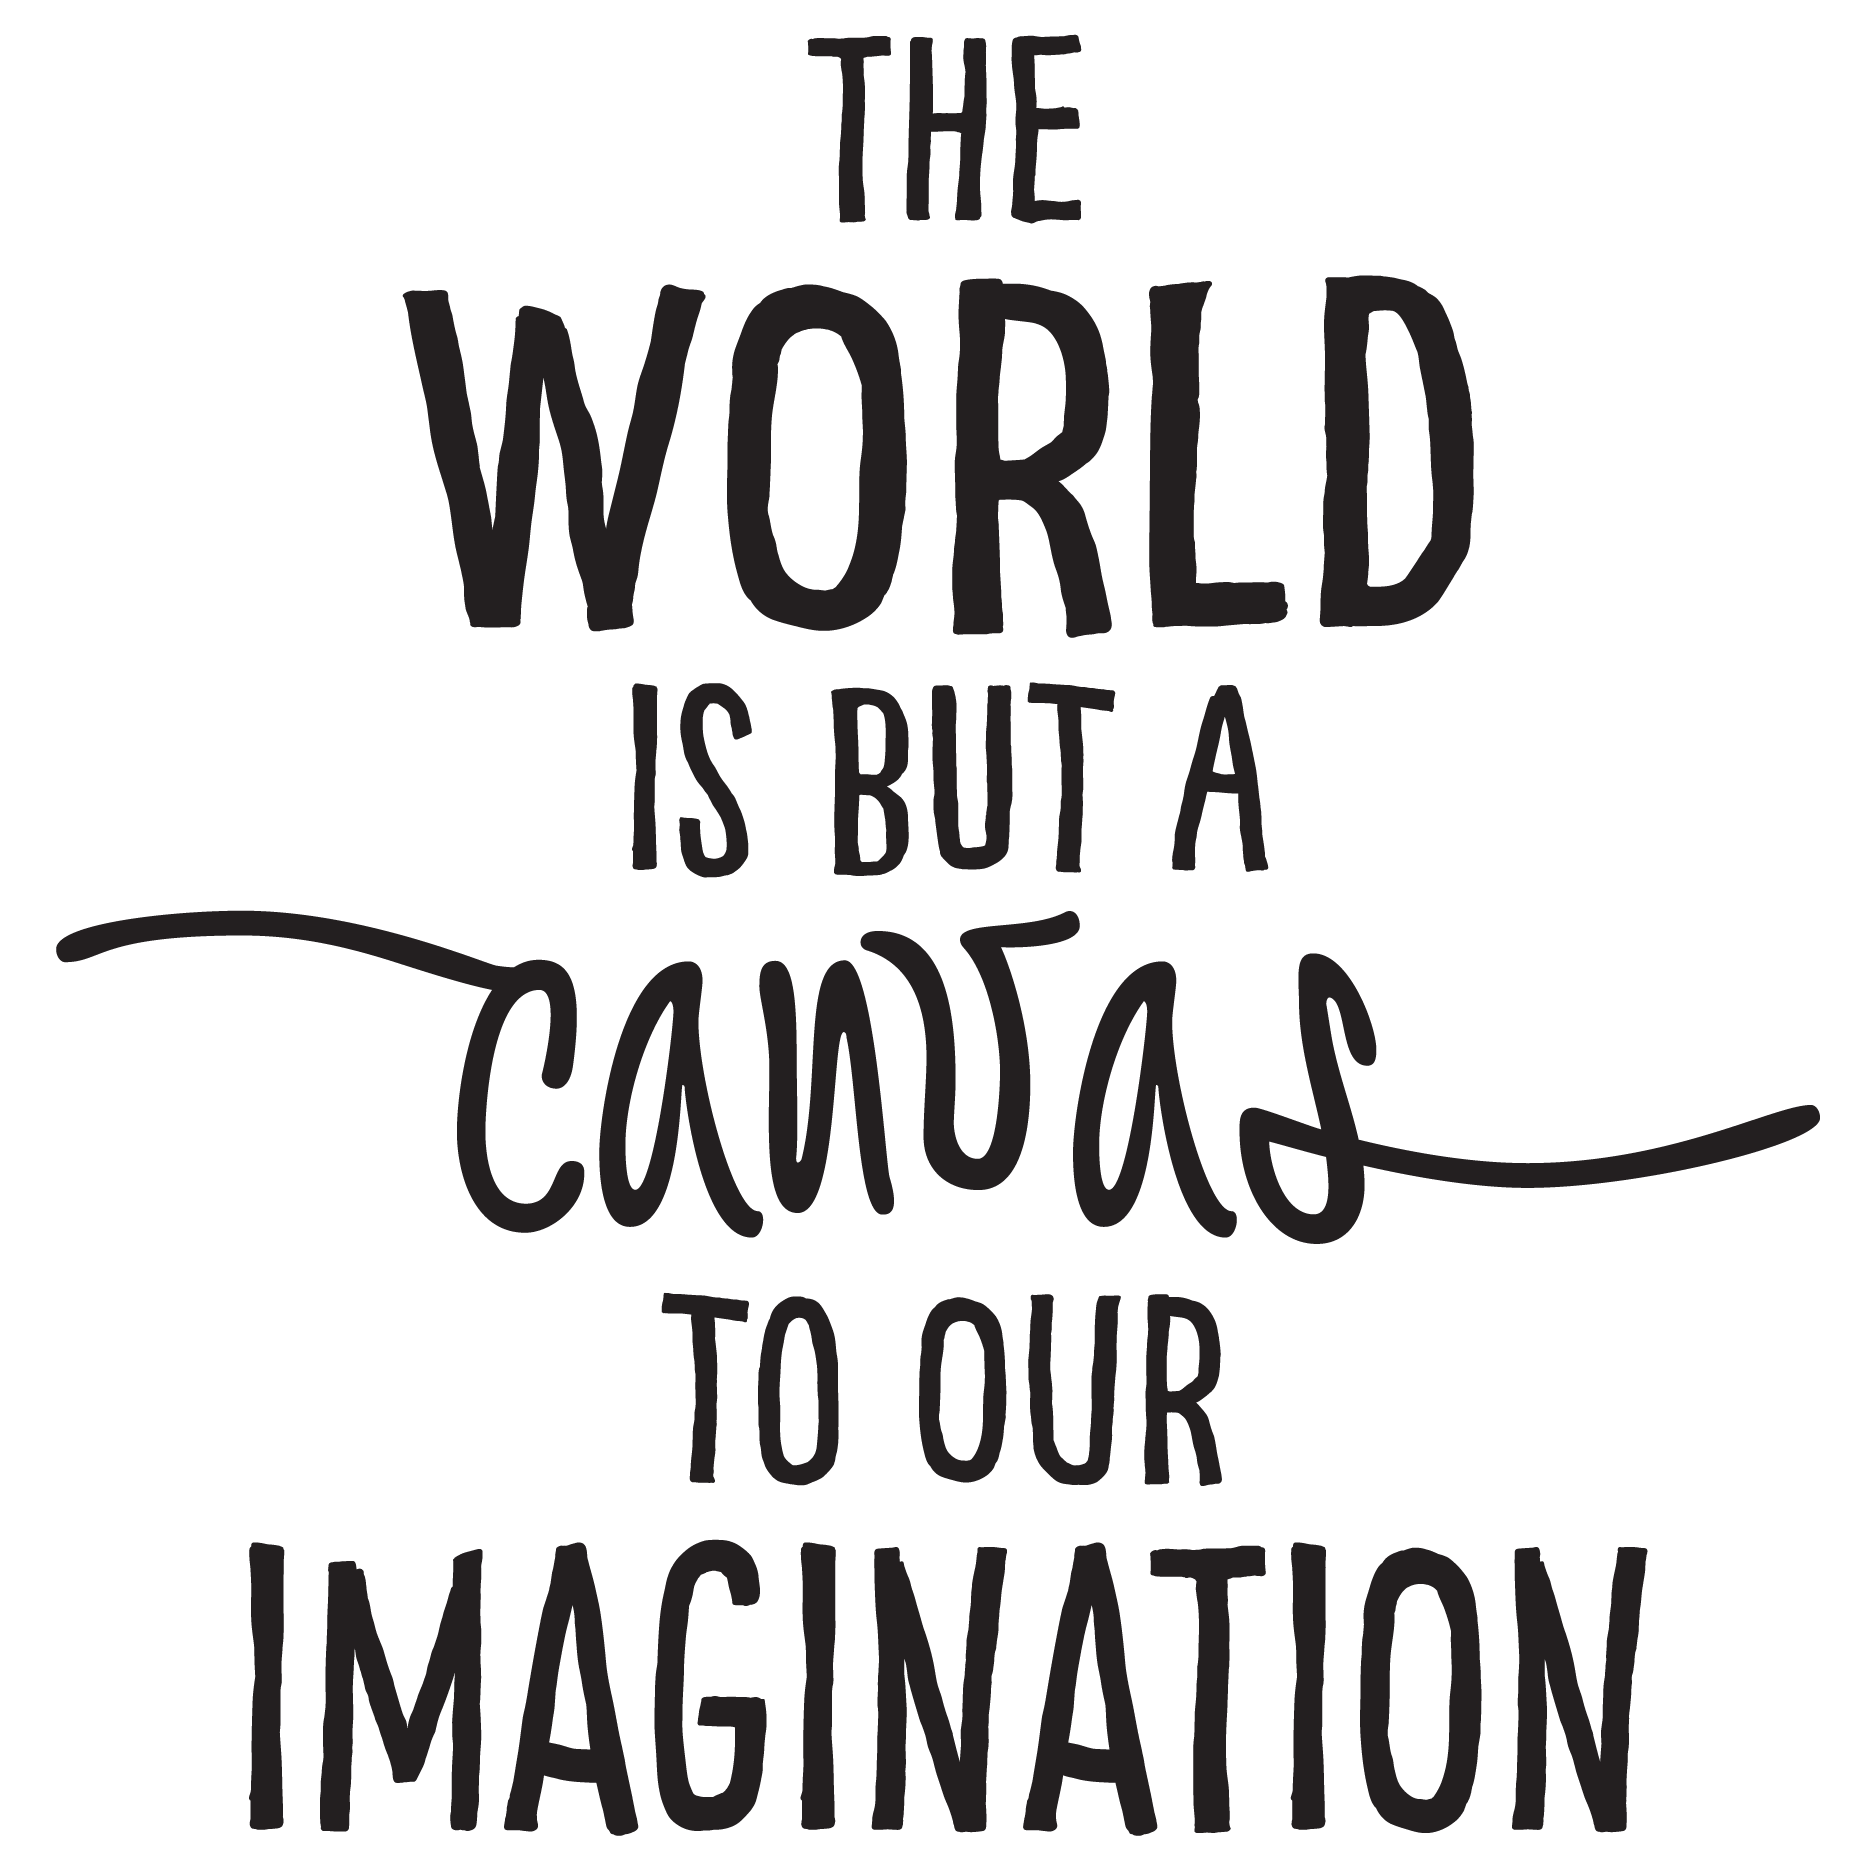 World Canvas Our Imagination Wall Quotes Decal